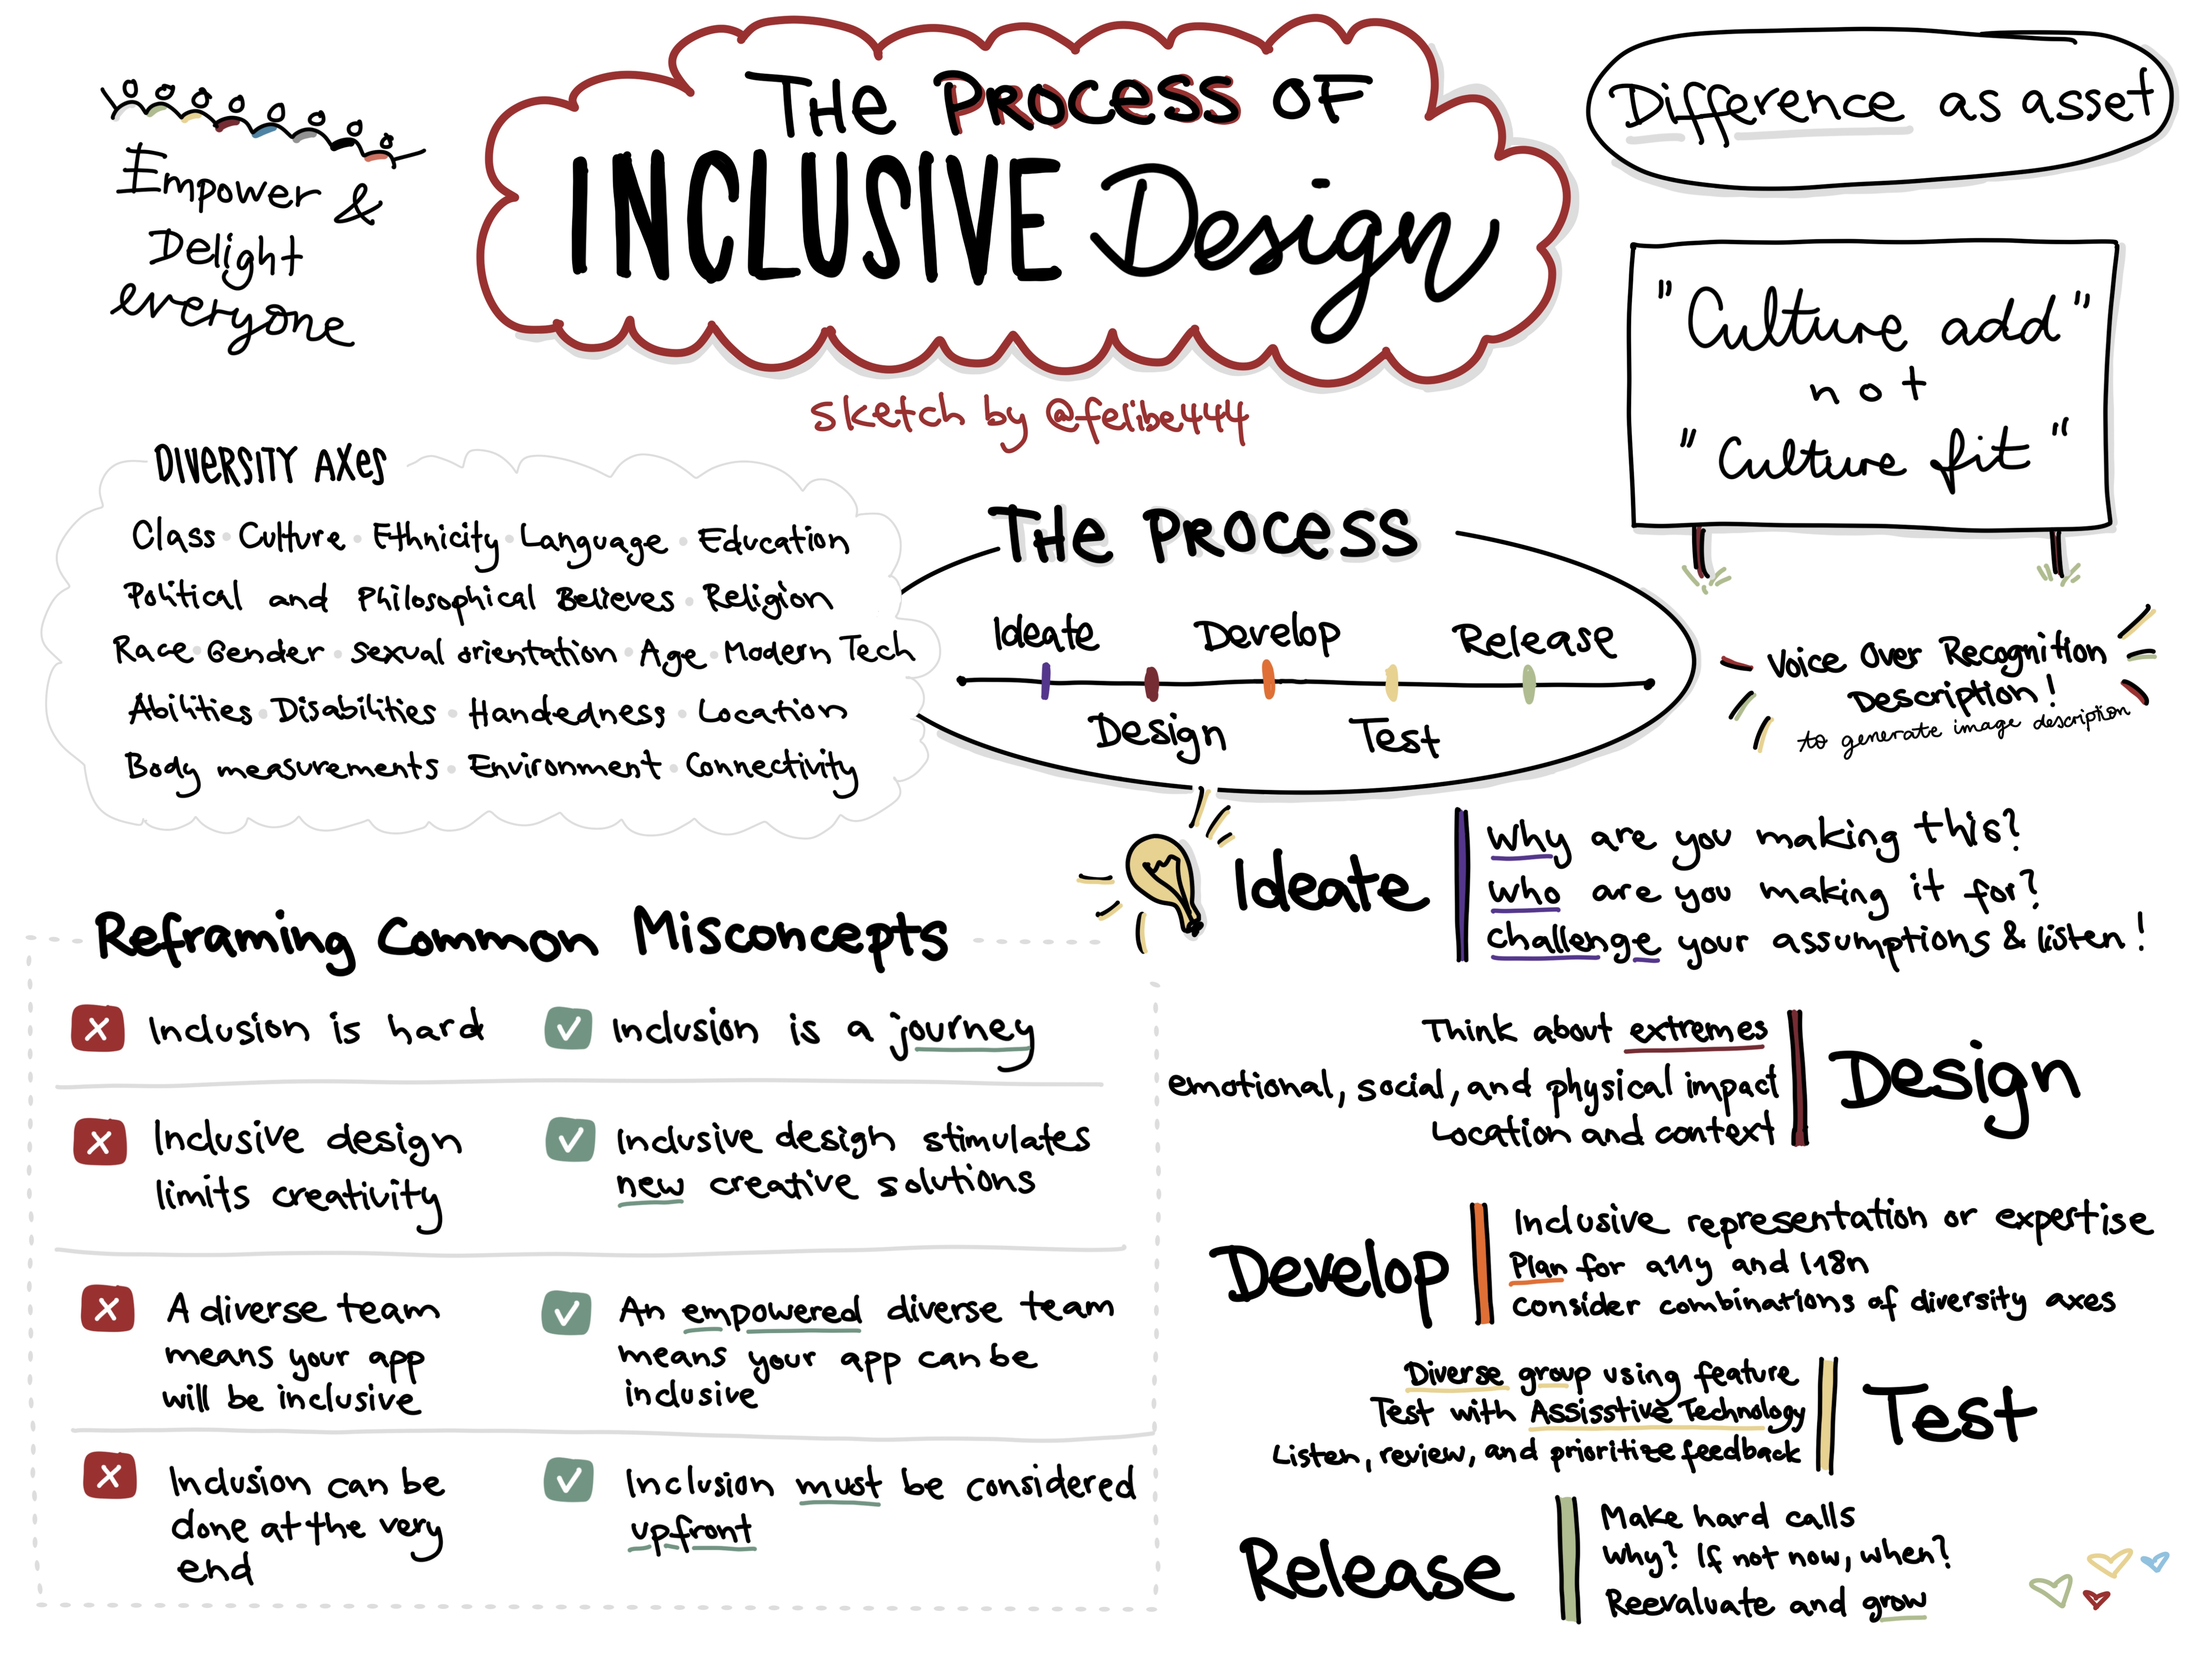 Sketchnote about 'The process of inclusive design' at WWDC21 about different diversity axes, common misconcepts about inclusion and the process of building an inclusive app or game